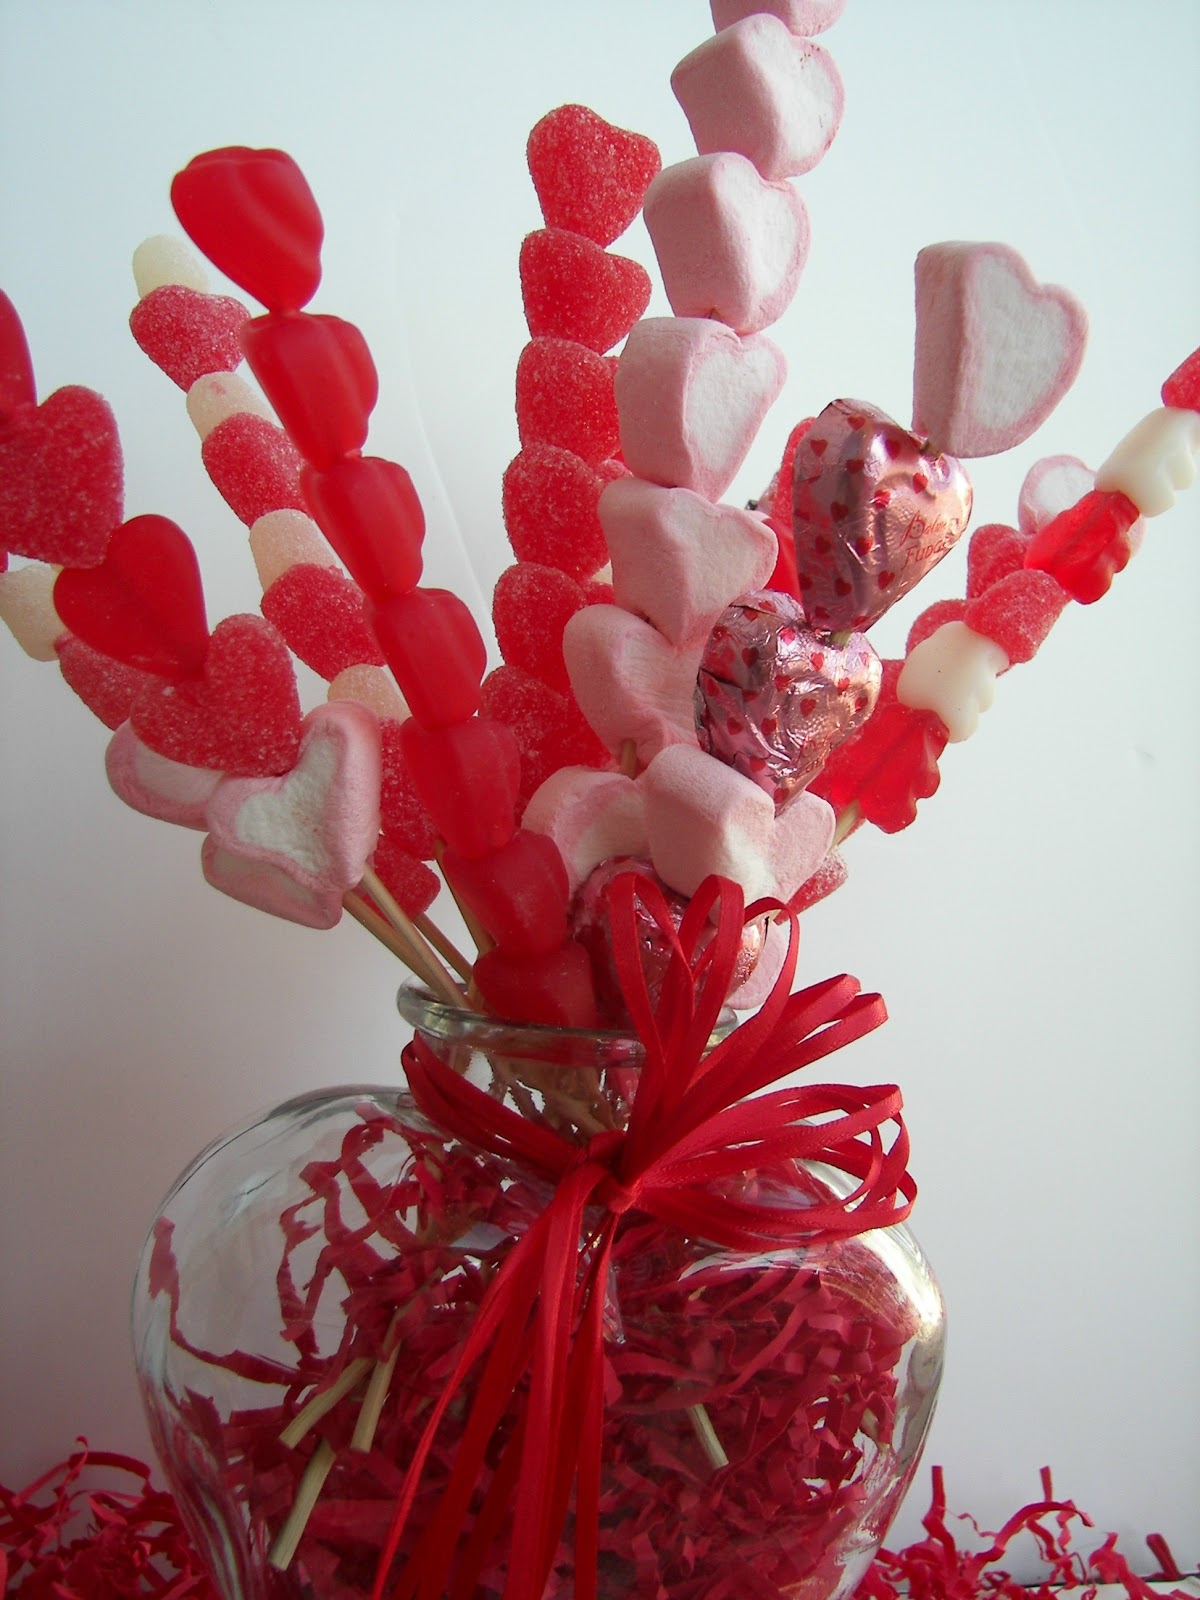 Love this Valentine's candy decor idea! The candy skewer bouquet is just so fun and different!